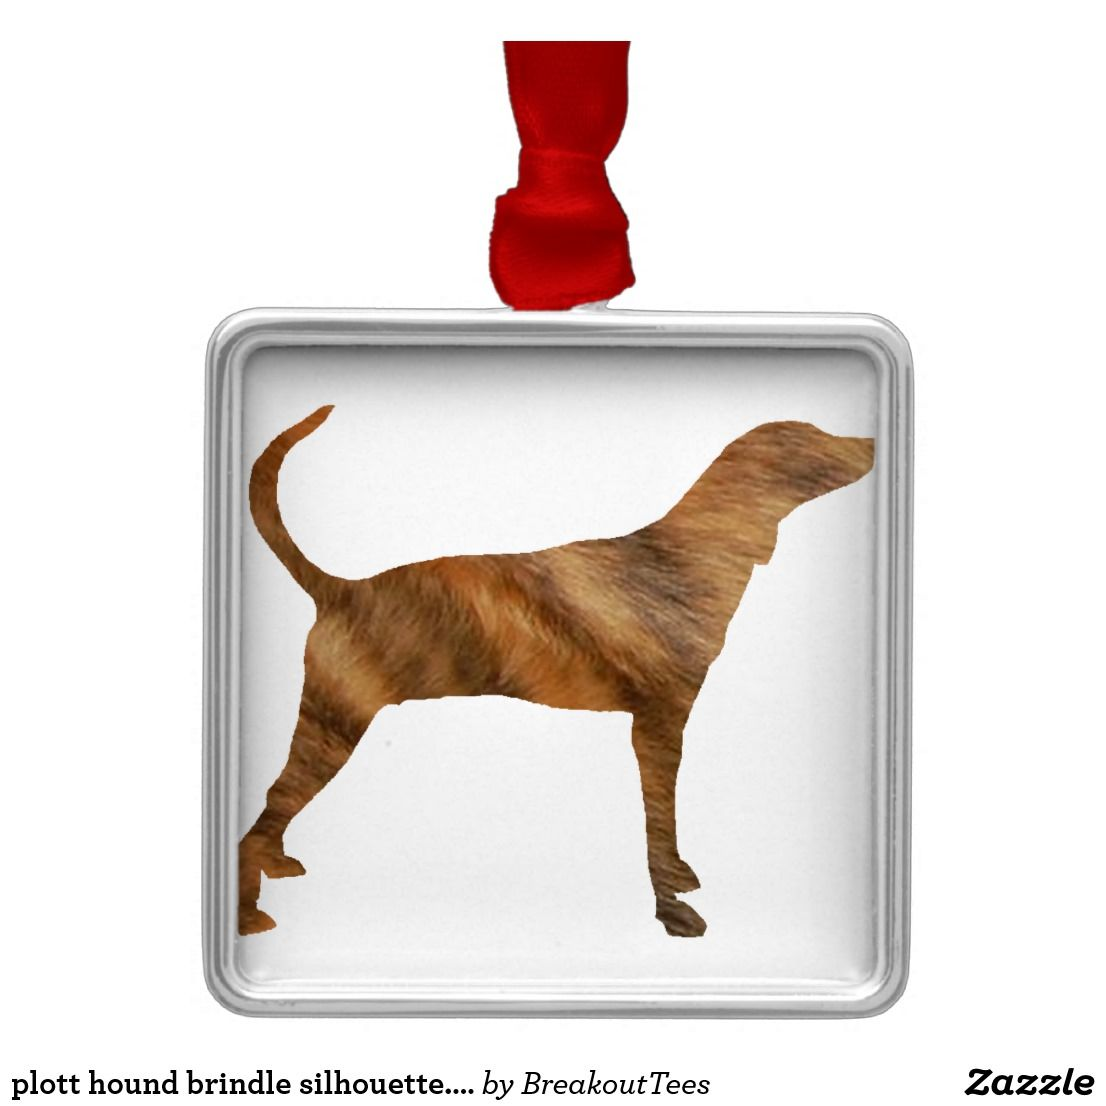 plott hound brindle silhouette.png metal ornament | Zazzle.com #plotthound